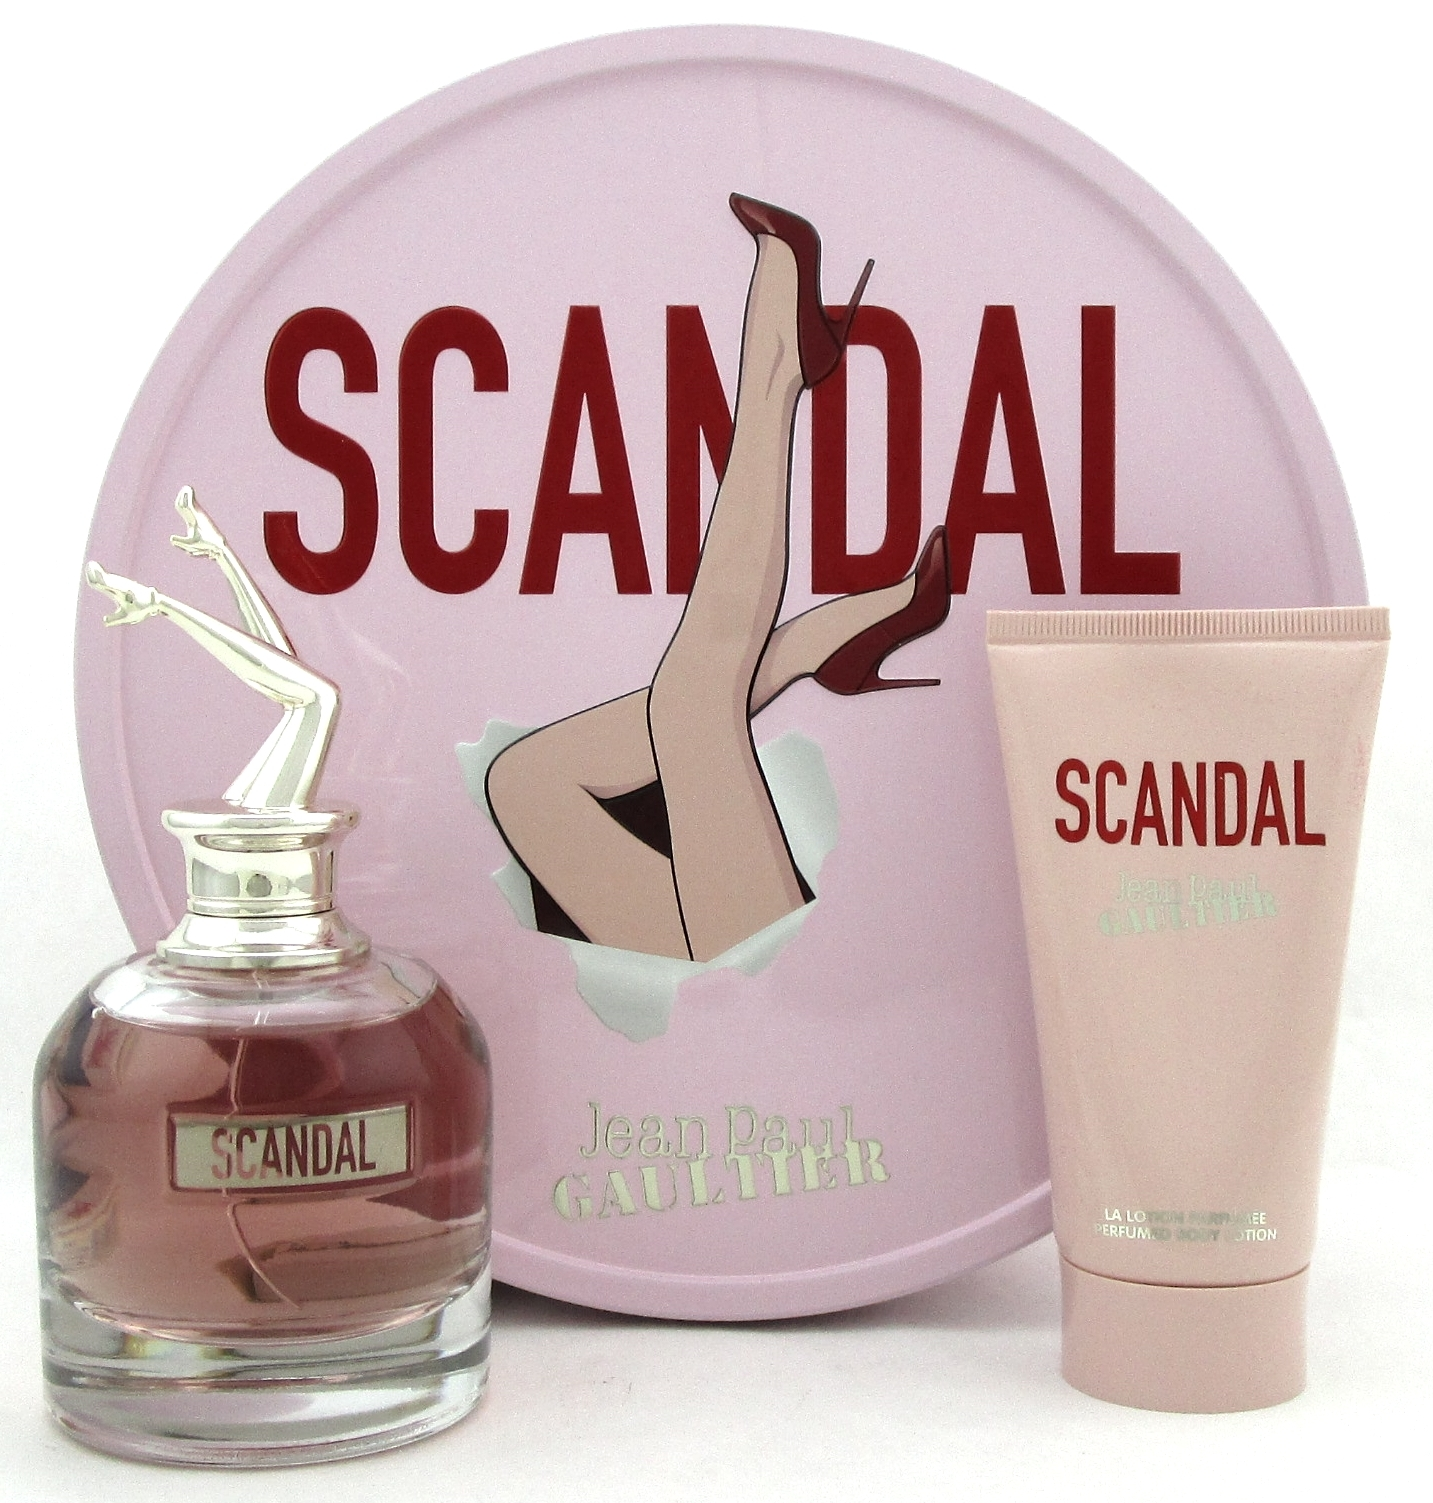 Estuche Jean Paul Gaultier Scandal Edp 80ml Mujer + 75ml Body locion